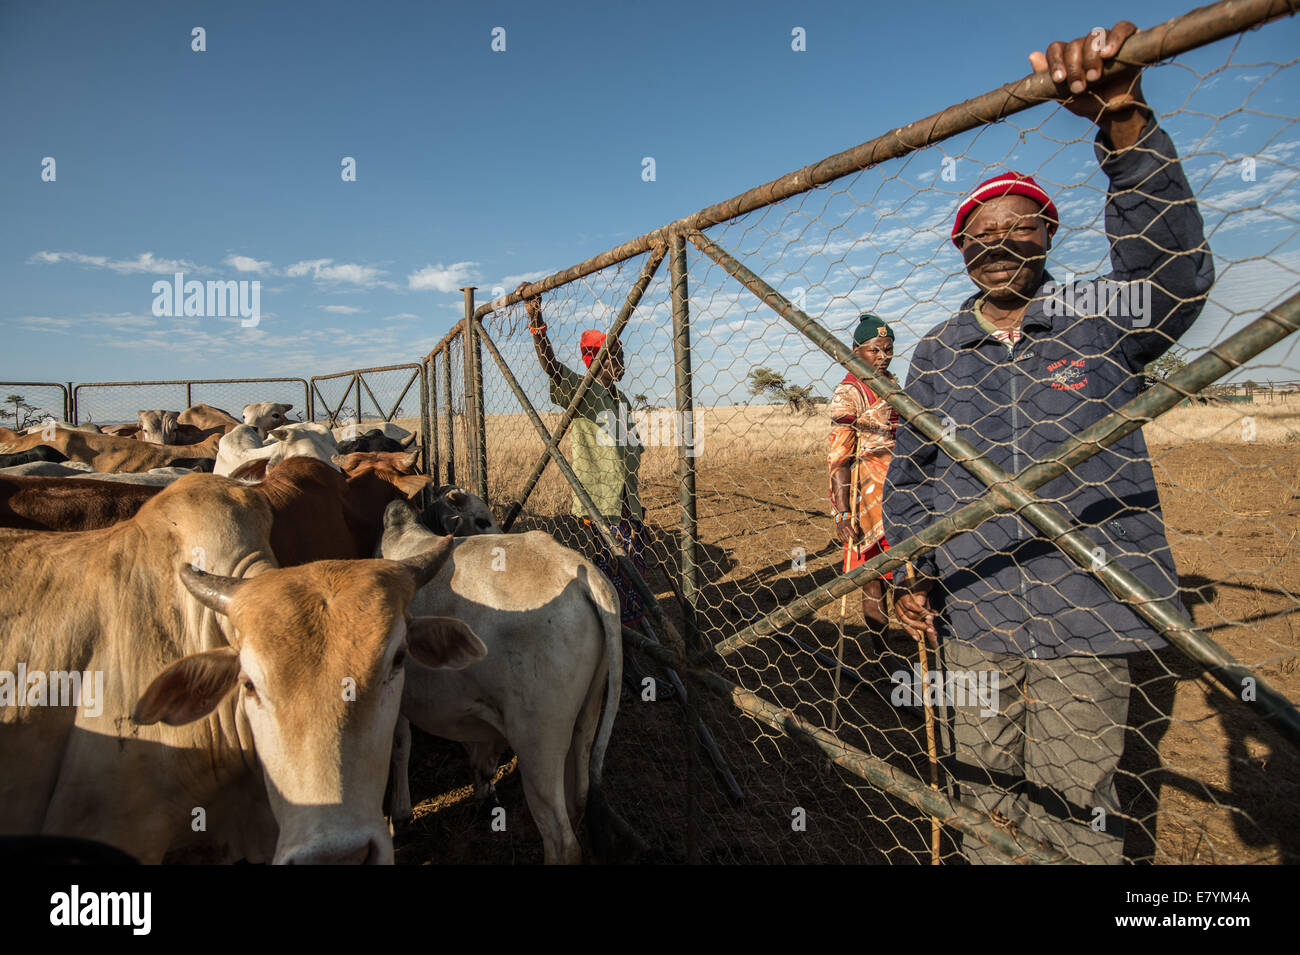 """Sepengo Lendira watches cattle at Lewa Wildlife Conservancy which is part of a """"Livestock to Market"""" business that - Stock Image"""